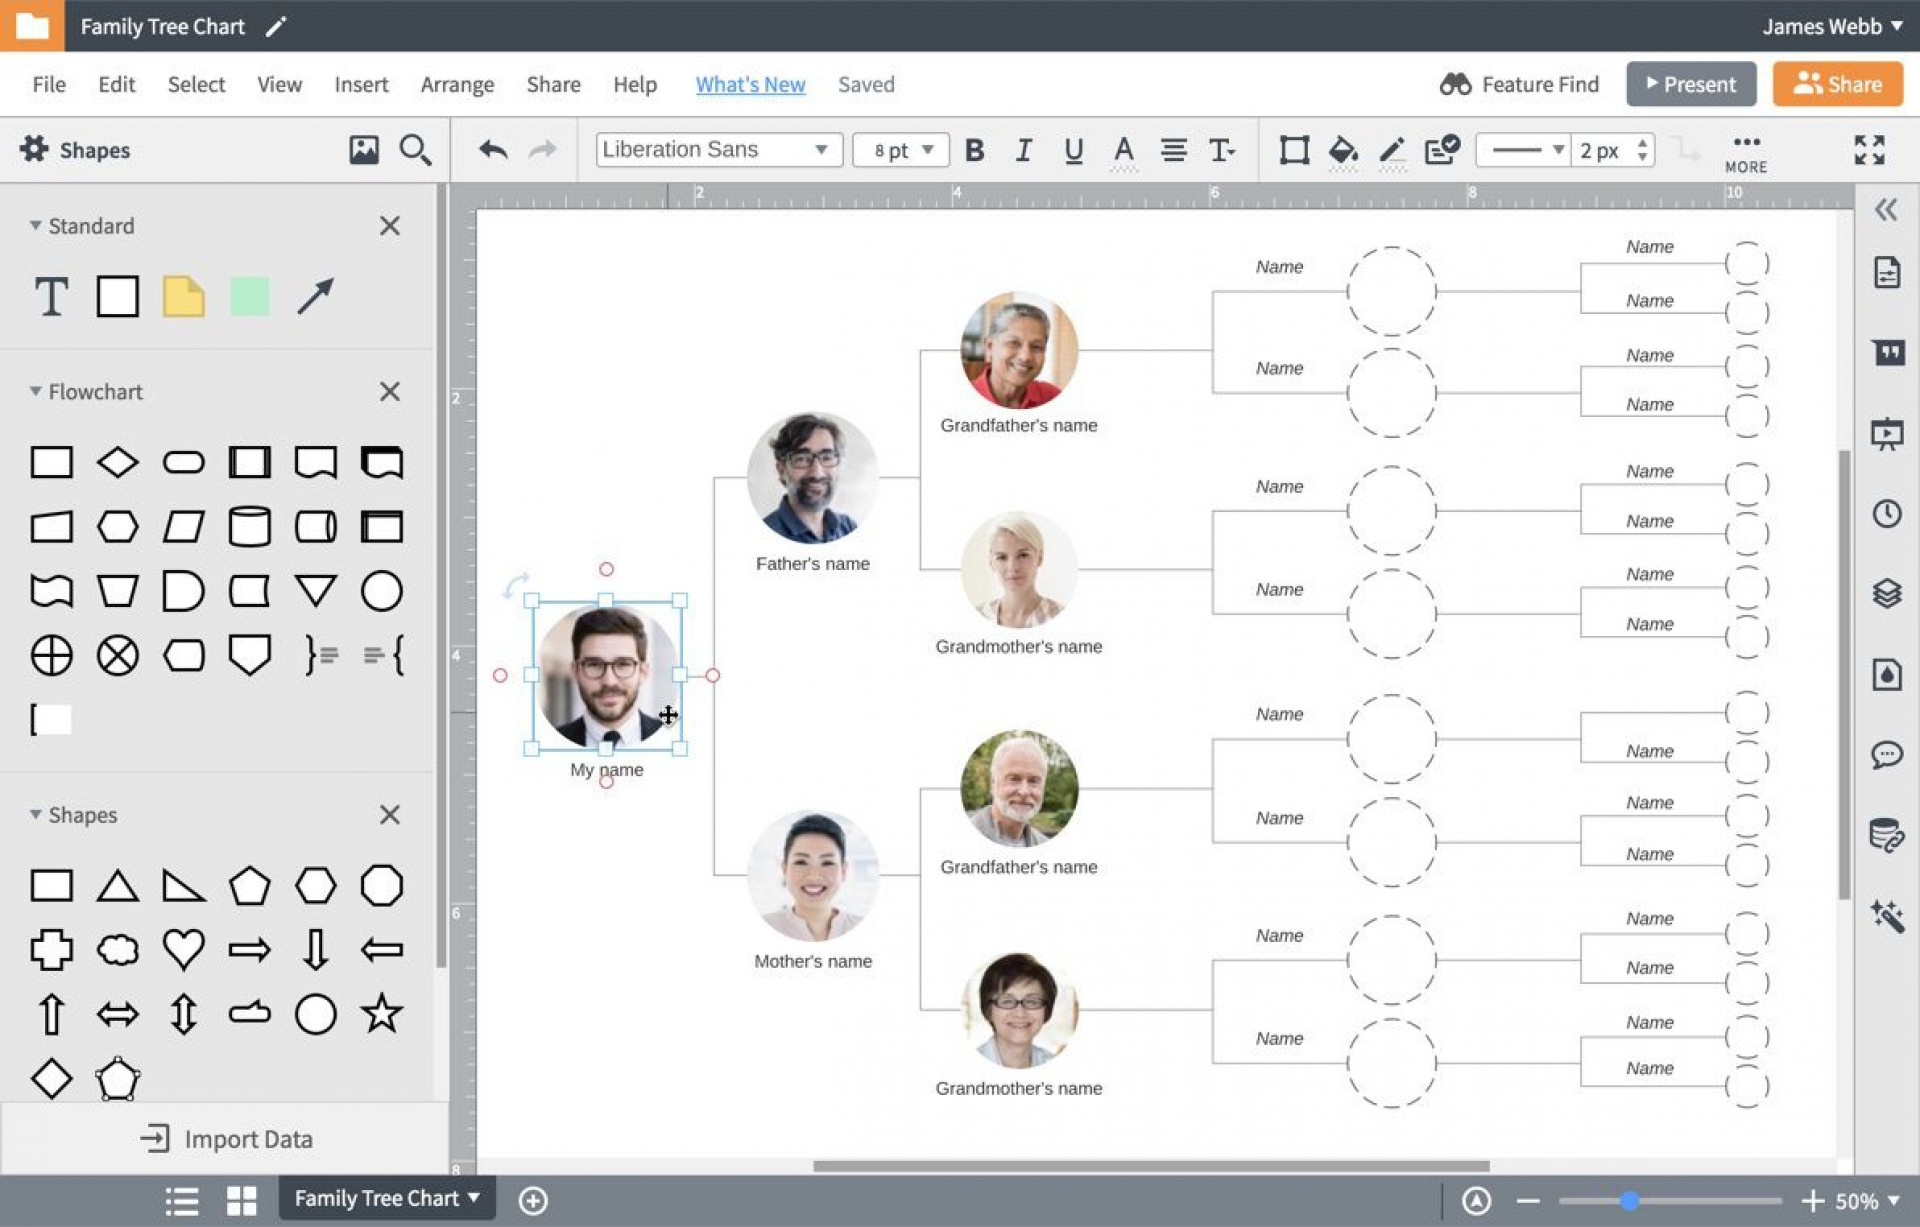 007 Exceptional Family Tree Template Google Doc Sample  Docs I There A On Free Editable1920